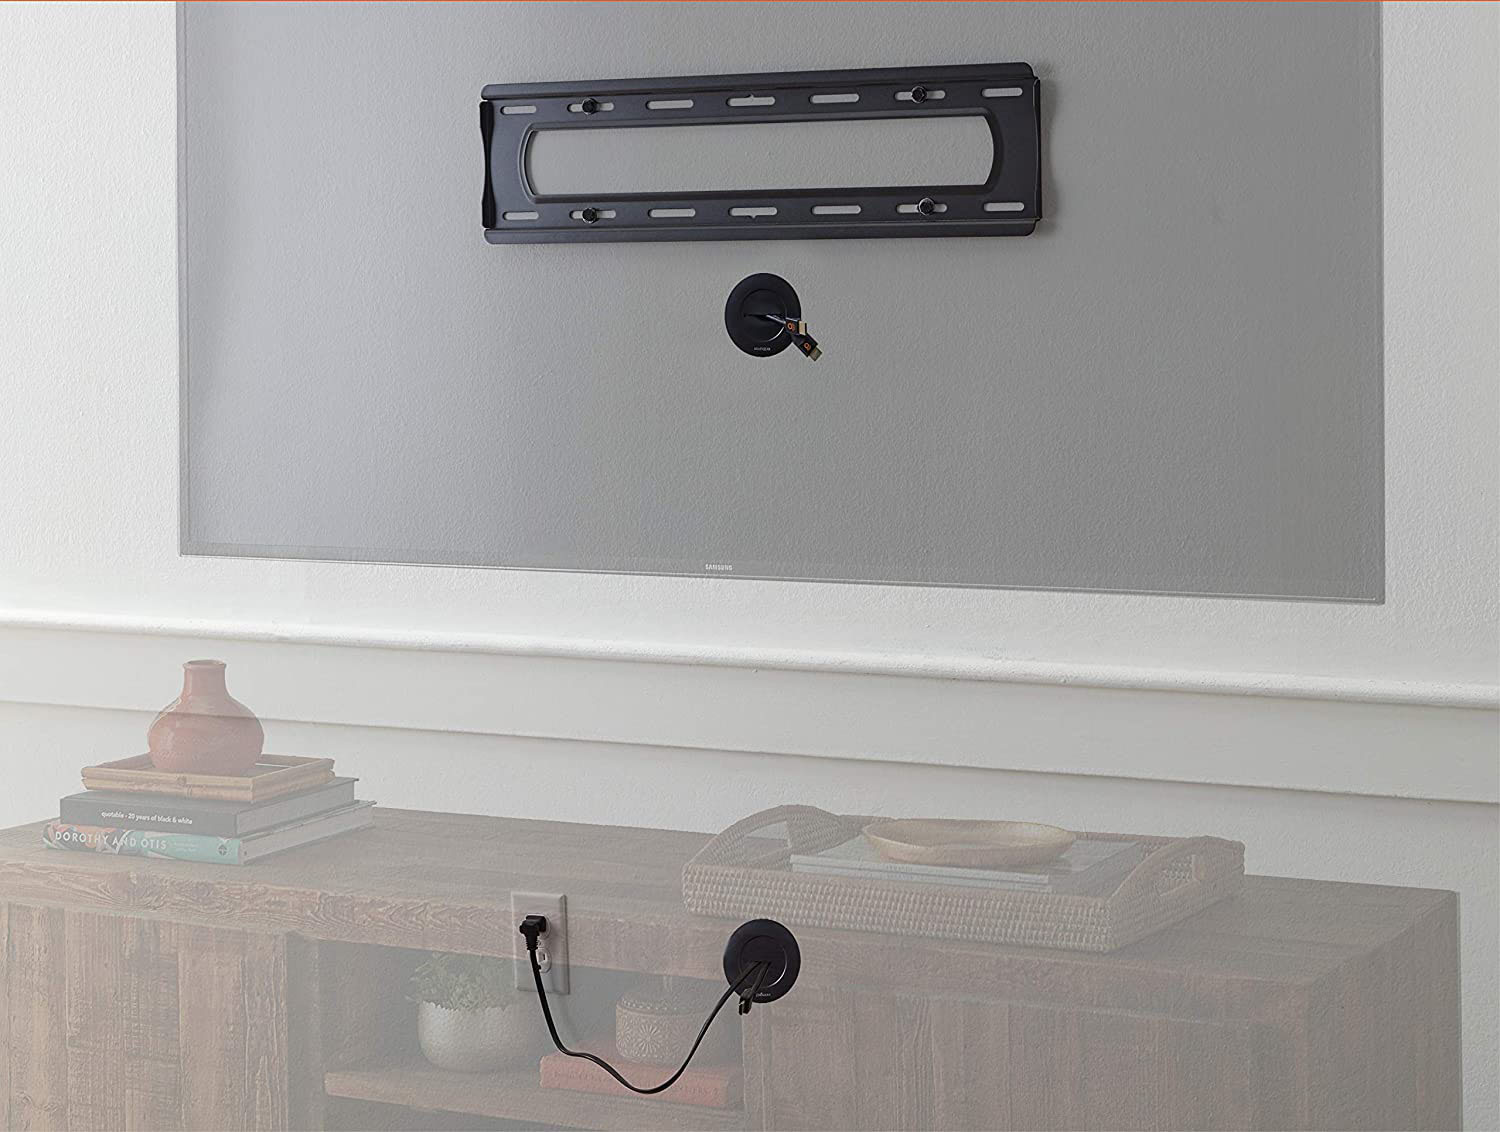 In wall cable management grommet kit